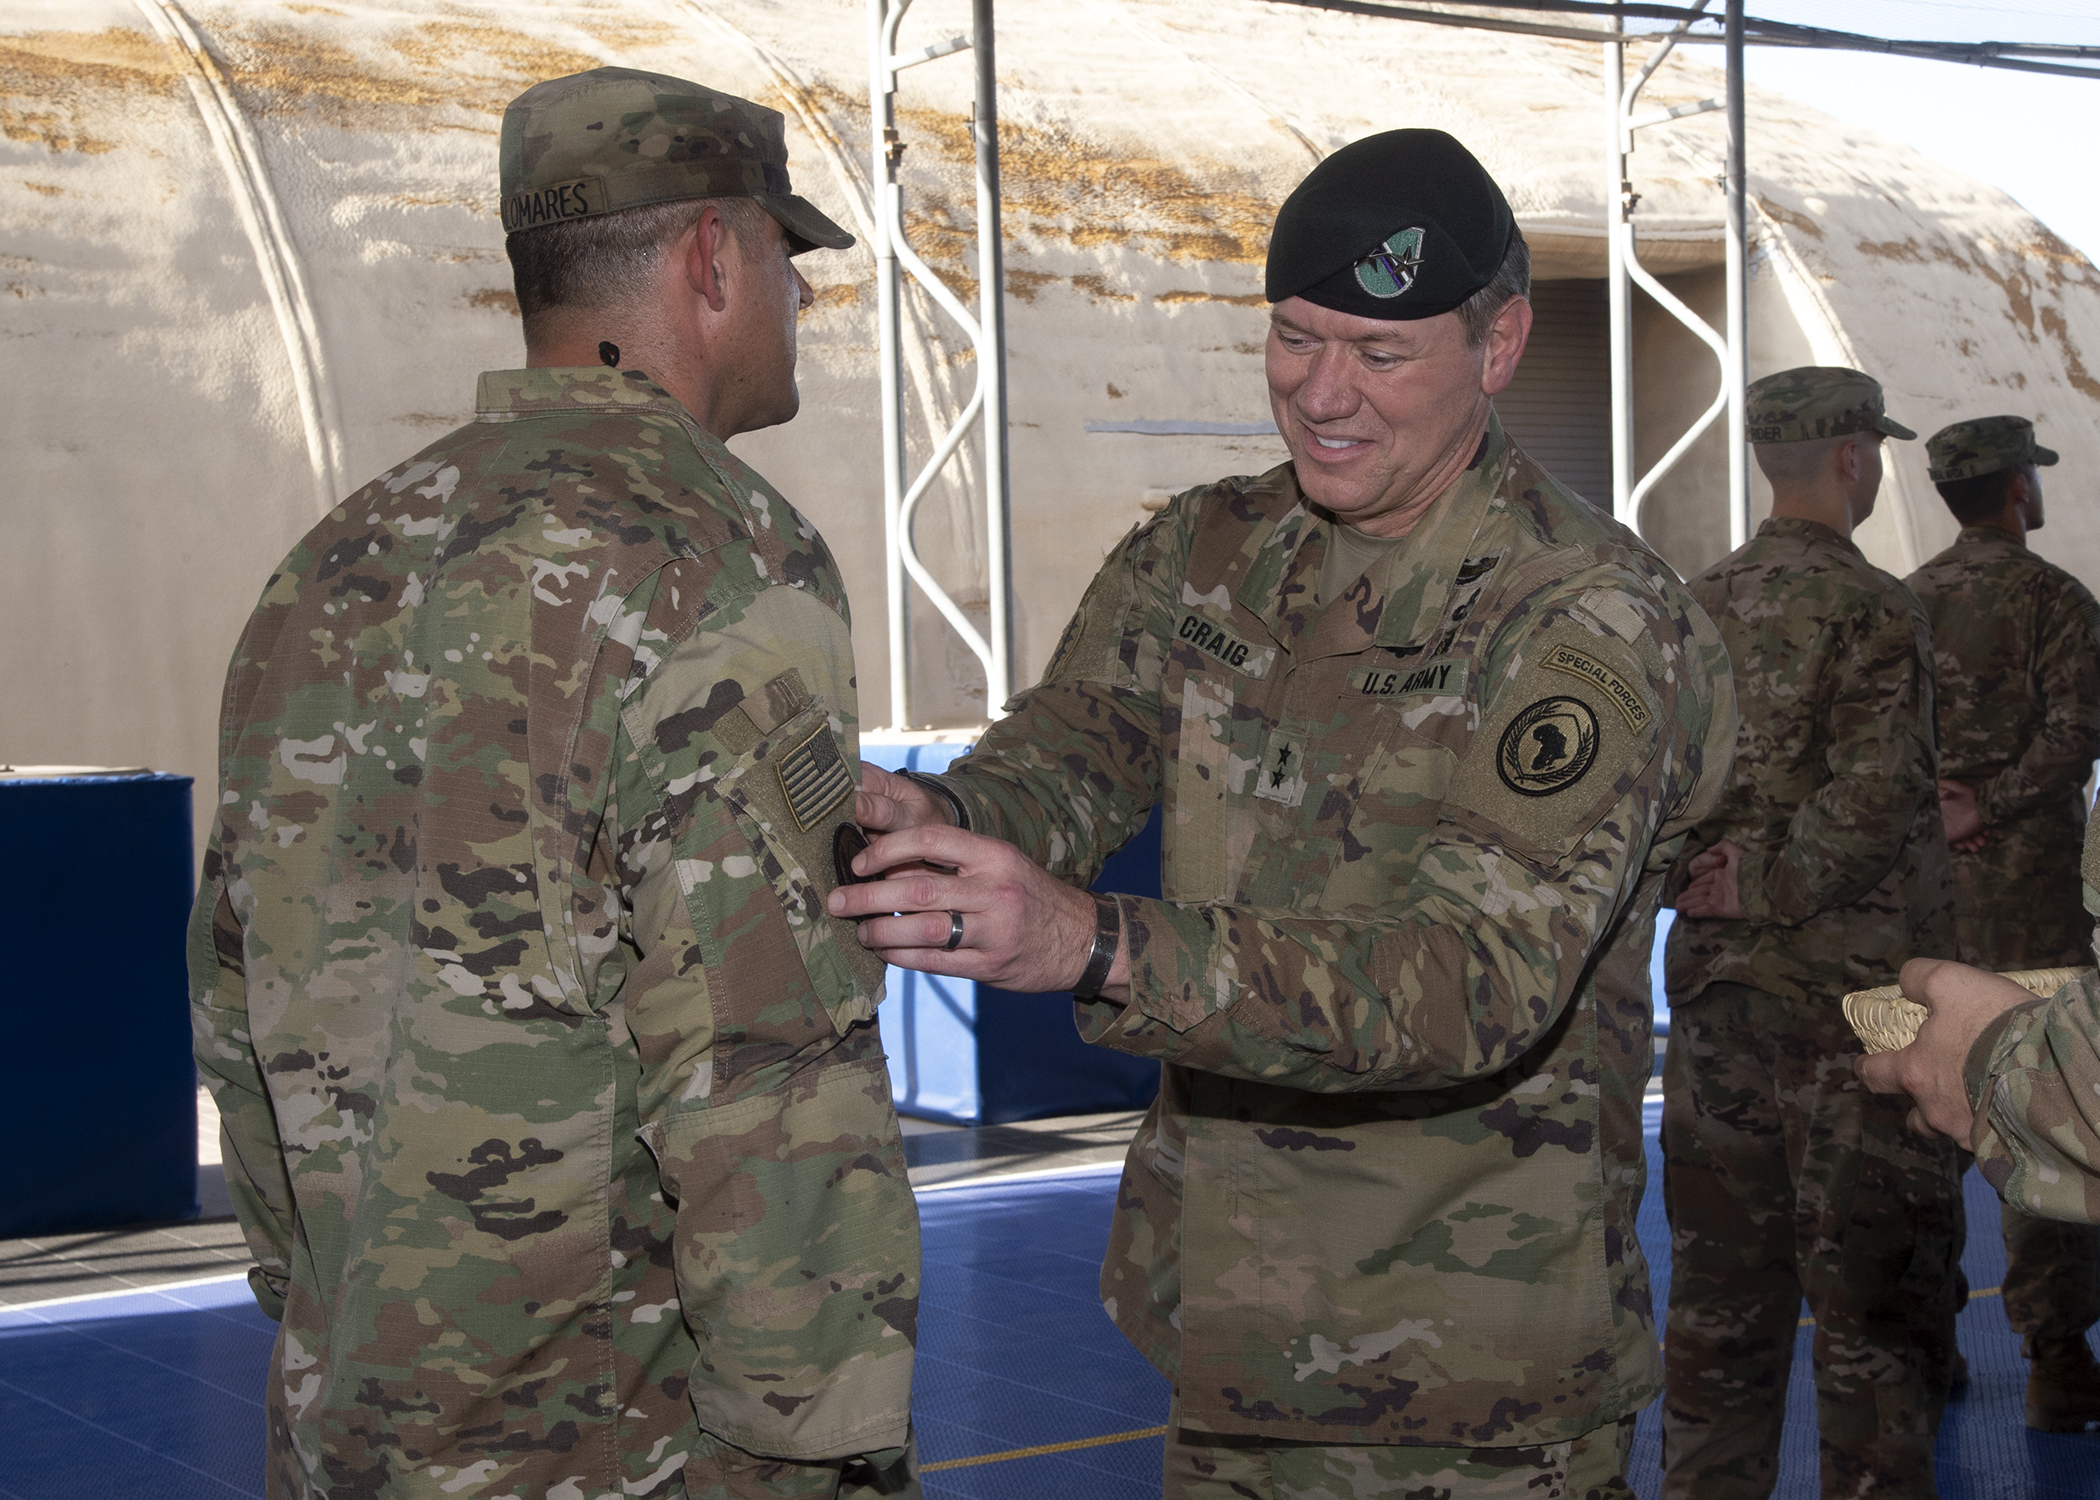 U.S. Army Maj. Gen. James D. Craig, right, commanding general, Combined Joint Task Force-Horn of Africa (CJTF-HOA), presents U.S. Army Master Sgt. Eduardo Palomares a combat patch during a patching ceremony for U.S. Army Soldiers assigned to CJTF-HOA, at Camp Lemonnier, Djibouti, May 10, 2019. Army combat patches signify a Soldier's service in a combat zone and represent service in a member's current, or prior, unit. (U.S. Navy photo by Mass Communication Specialist 1st Class Nick Scott)